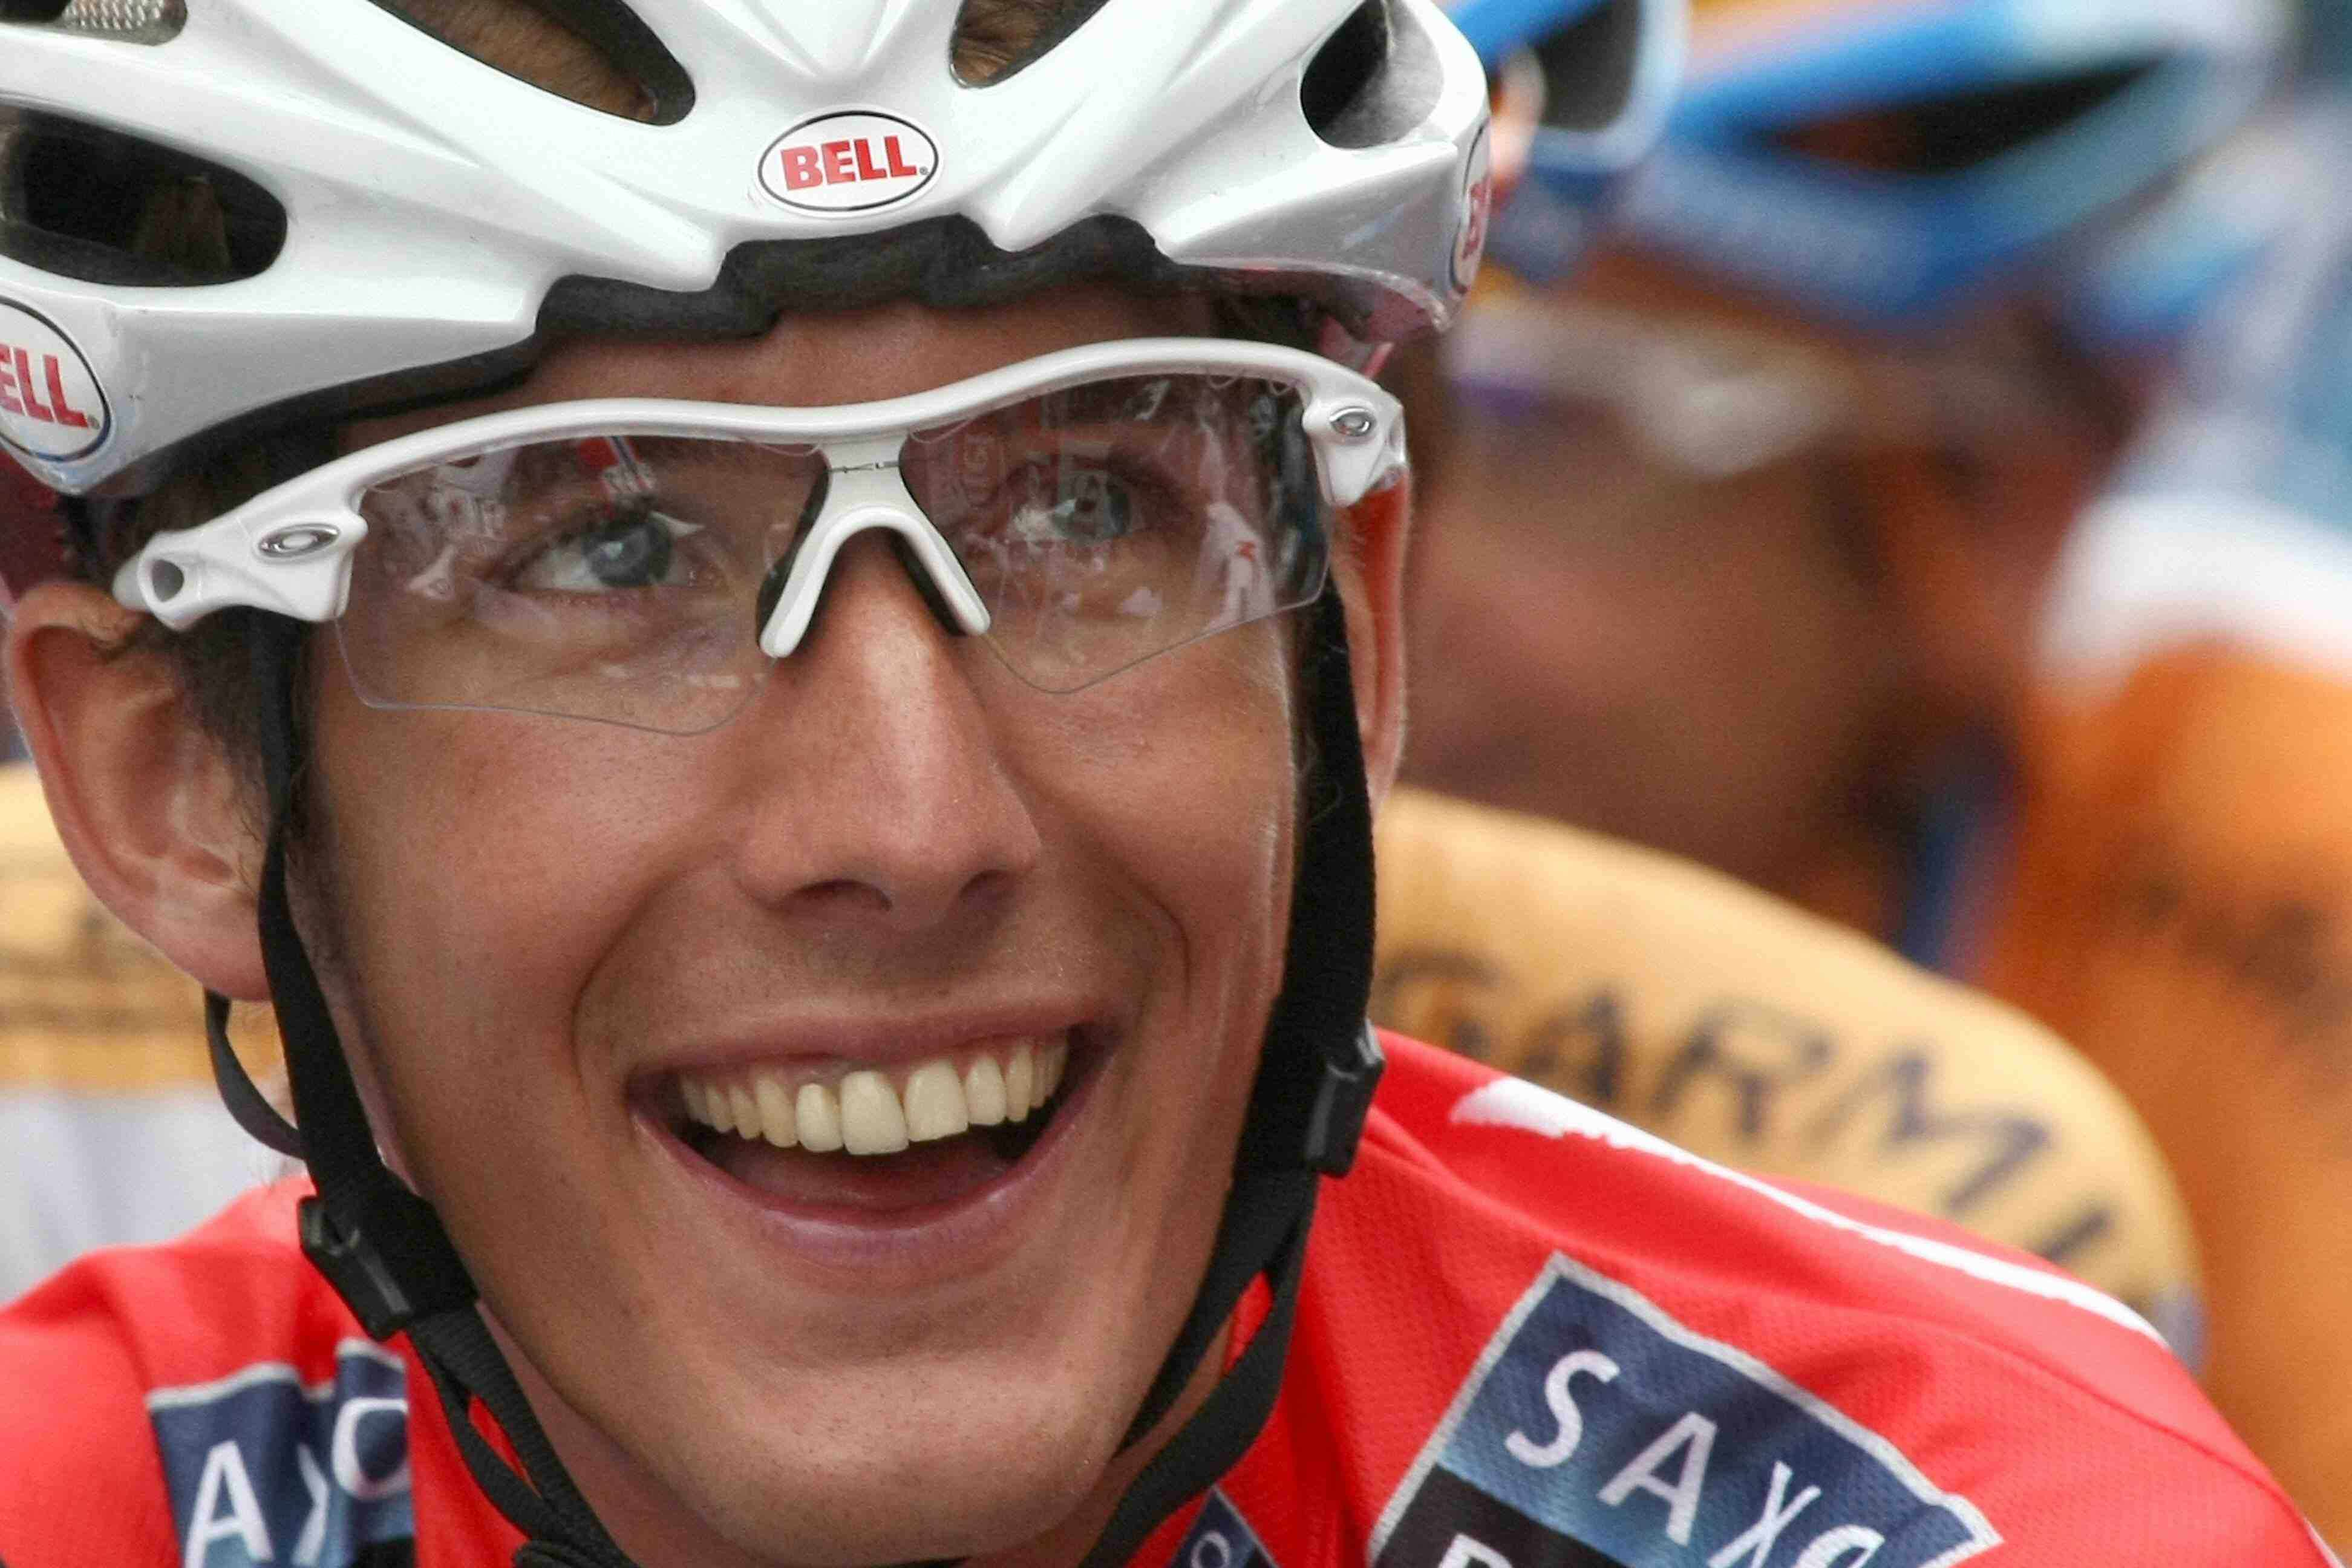 Saxo Bank climber Andy Schleck is eager for some high-altitude leg stretching.